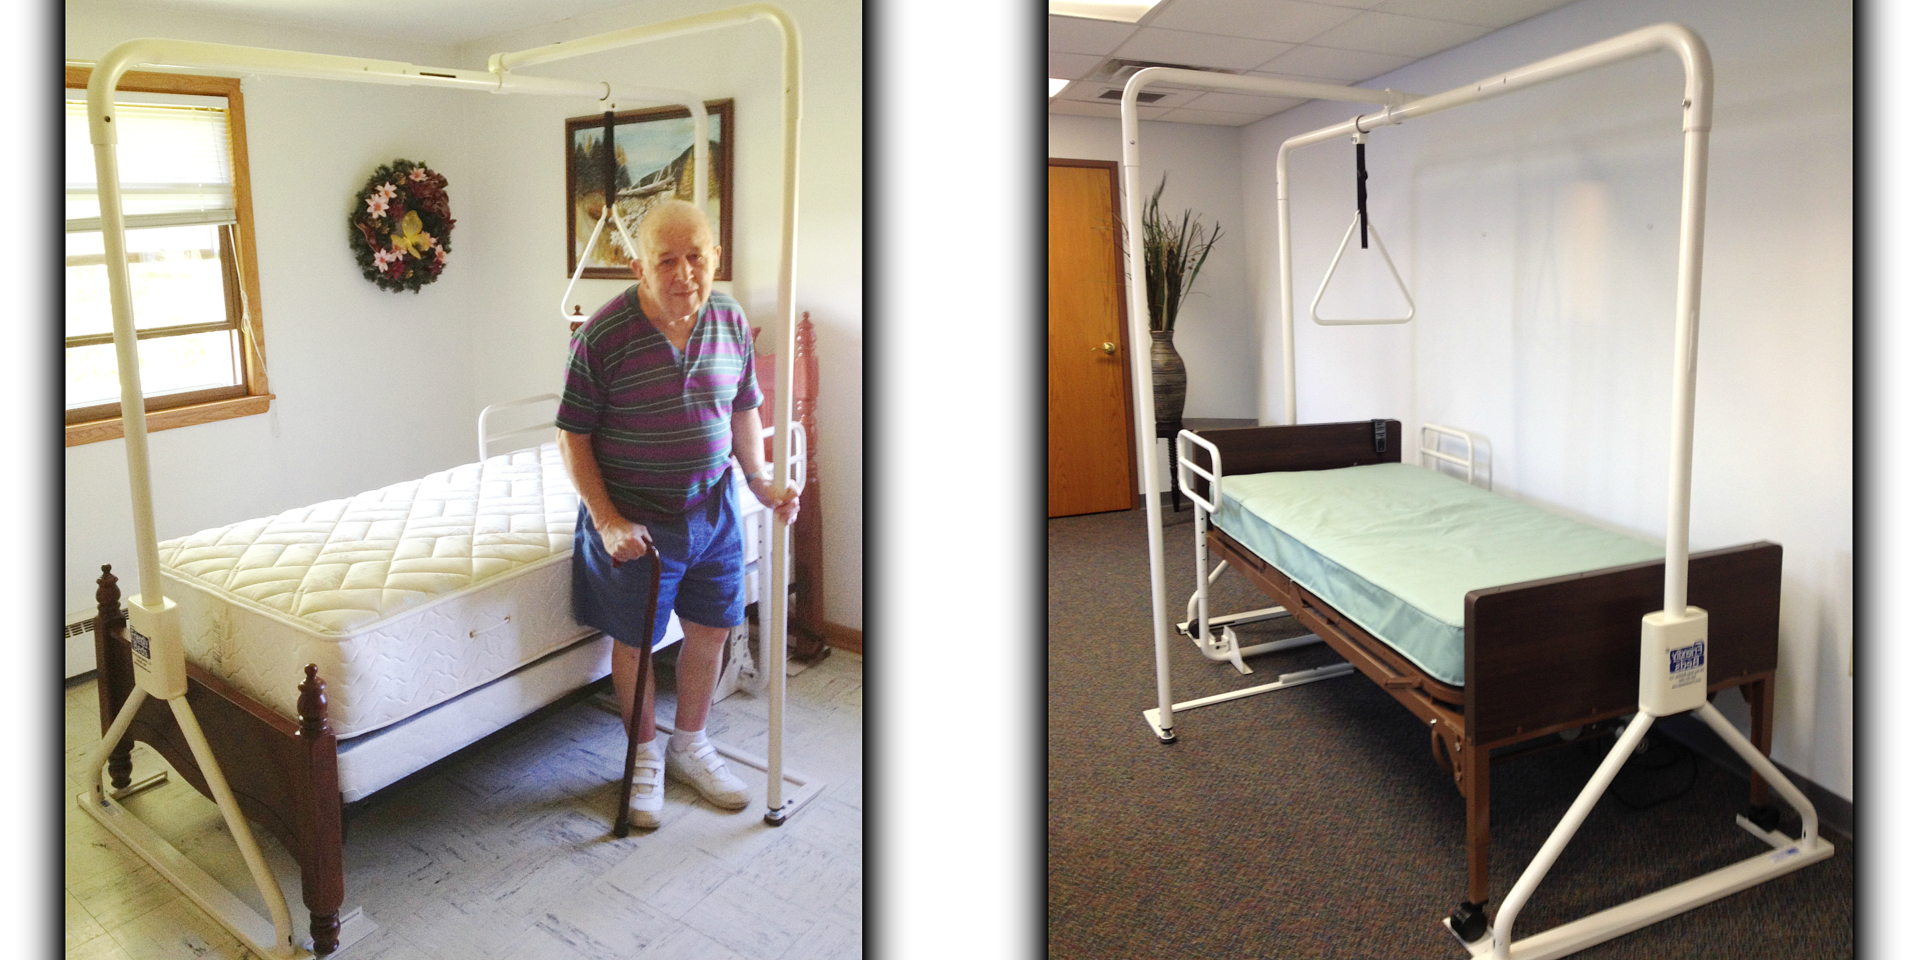 Number of hospital beds in canada - Bed Trapeze Bed Pole For Hospital Bed